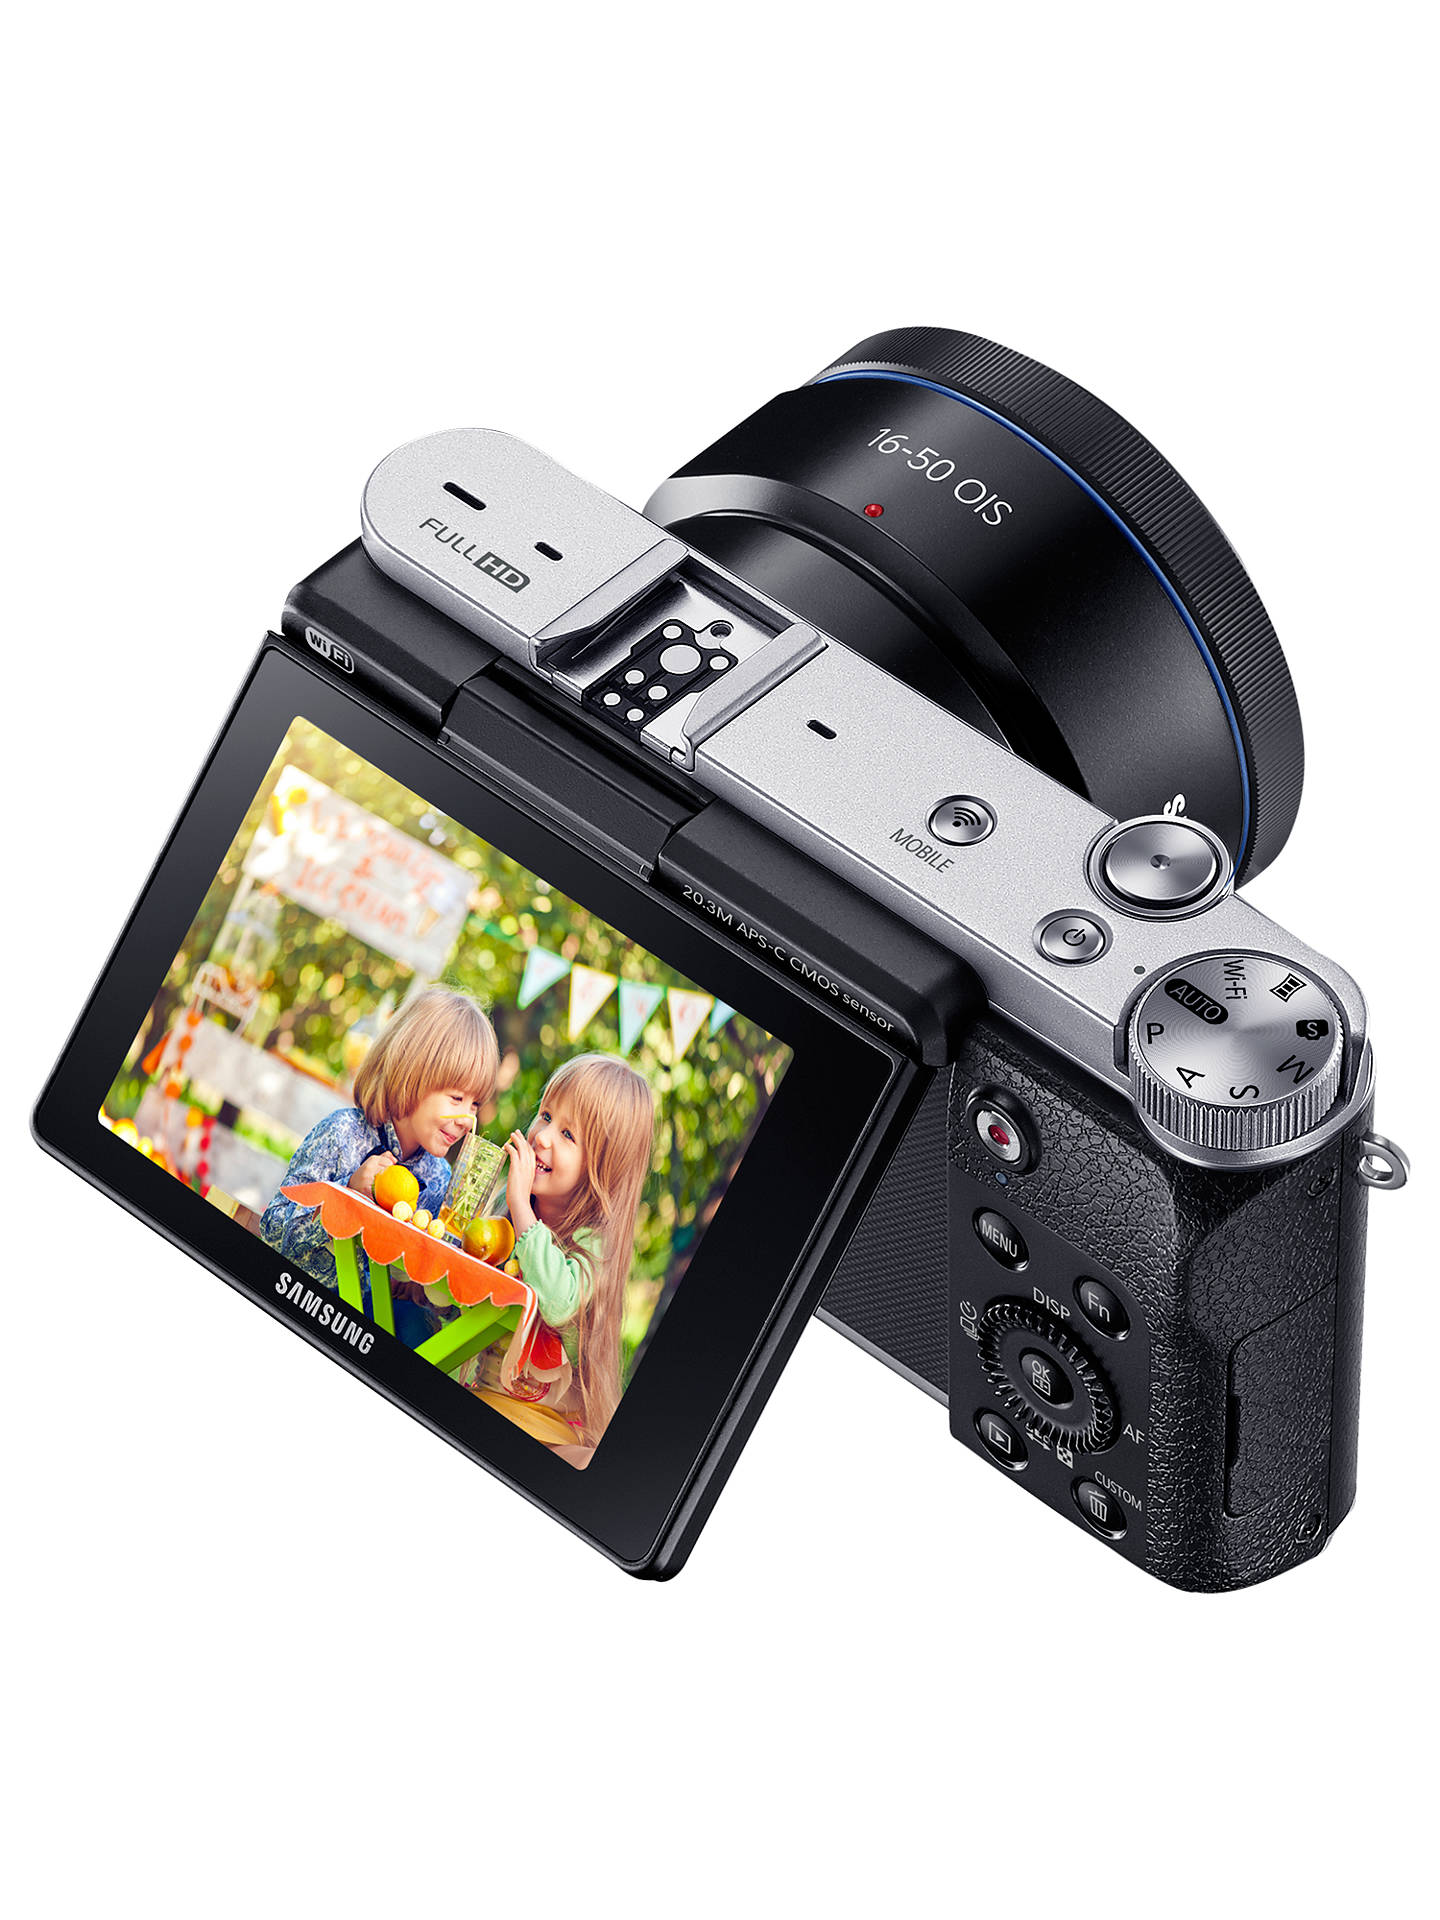 Samsung Galaxy NX3000 Compact System Camera with 16-50mm